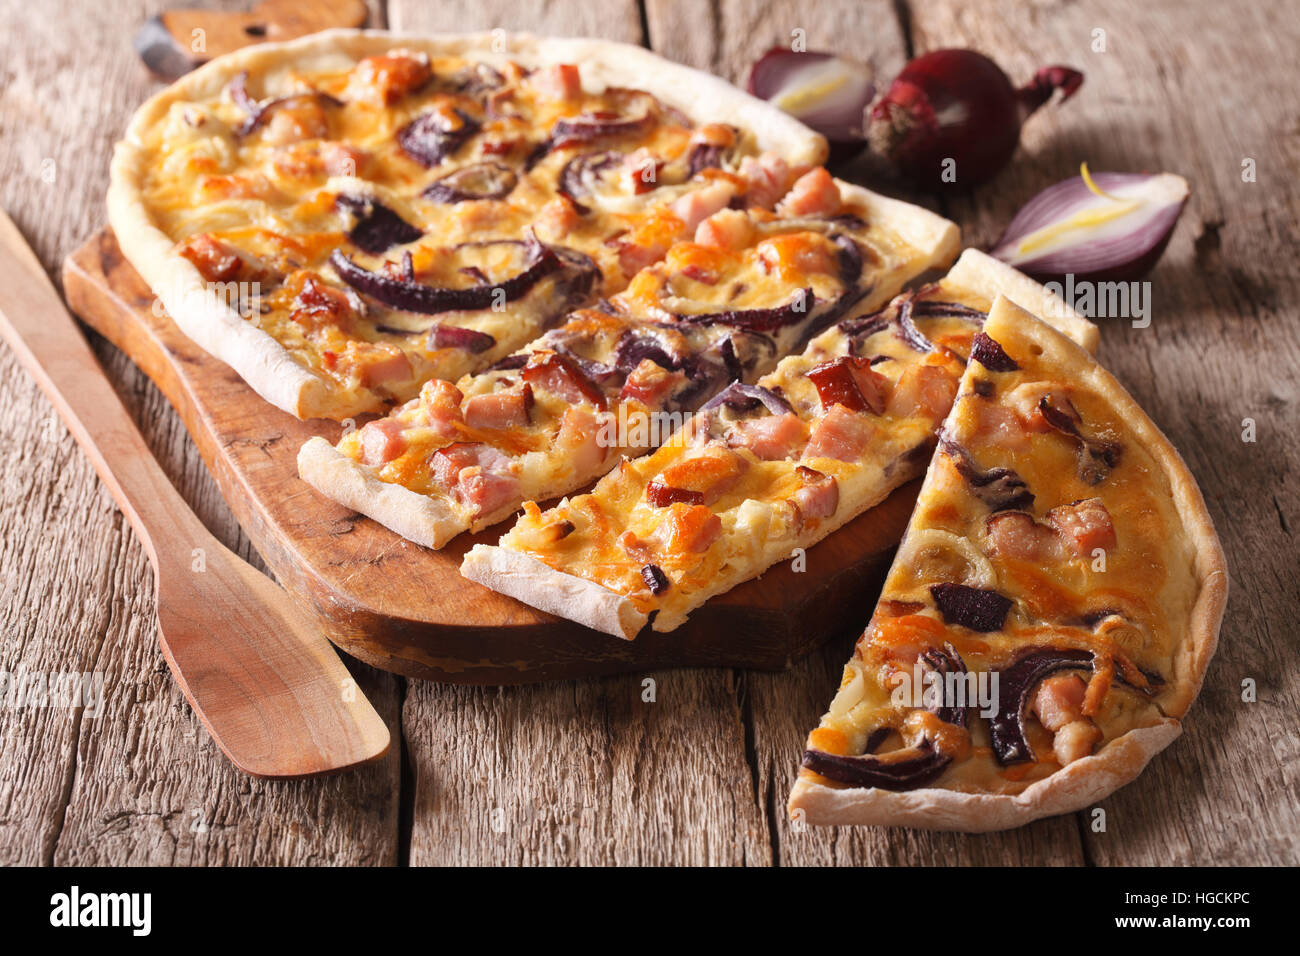 Delicious sliced pie flammkuchen with bacon and red onion close-up on the table. horizontal - Stock Image